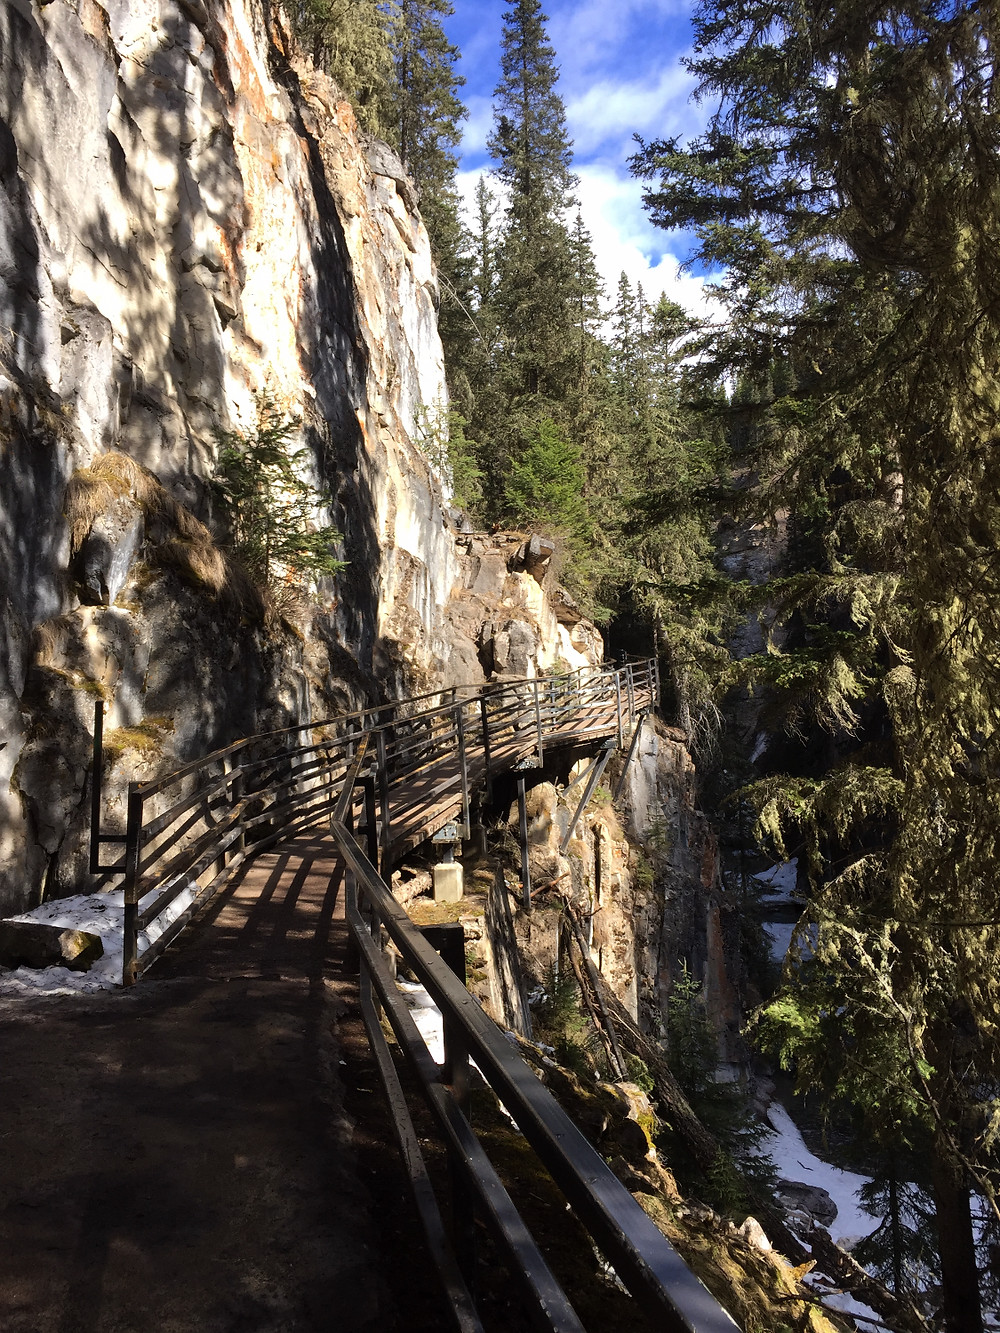 The catwalk that leads you through the canyon